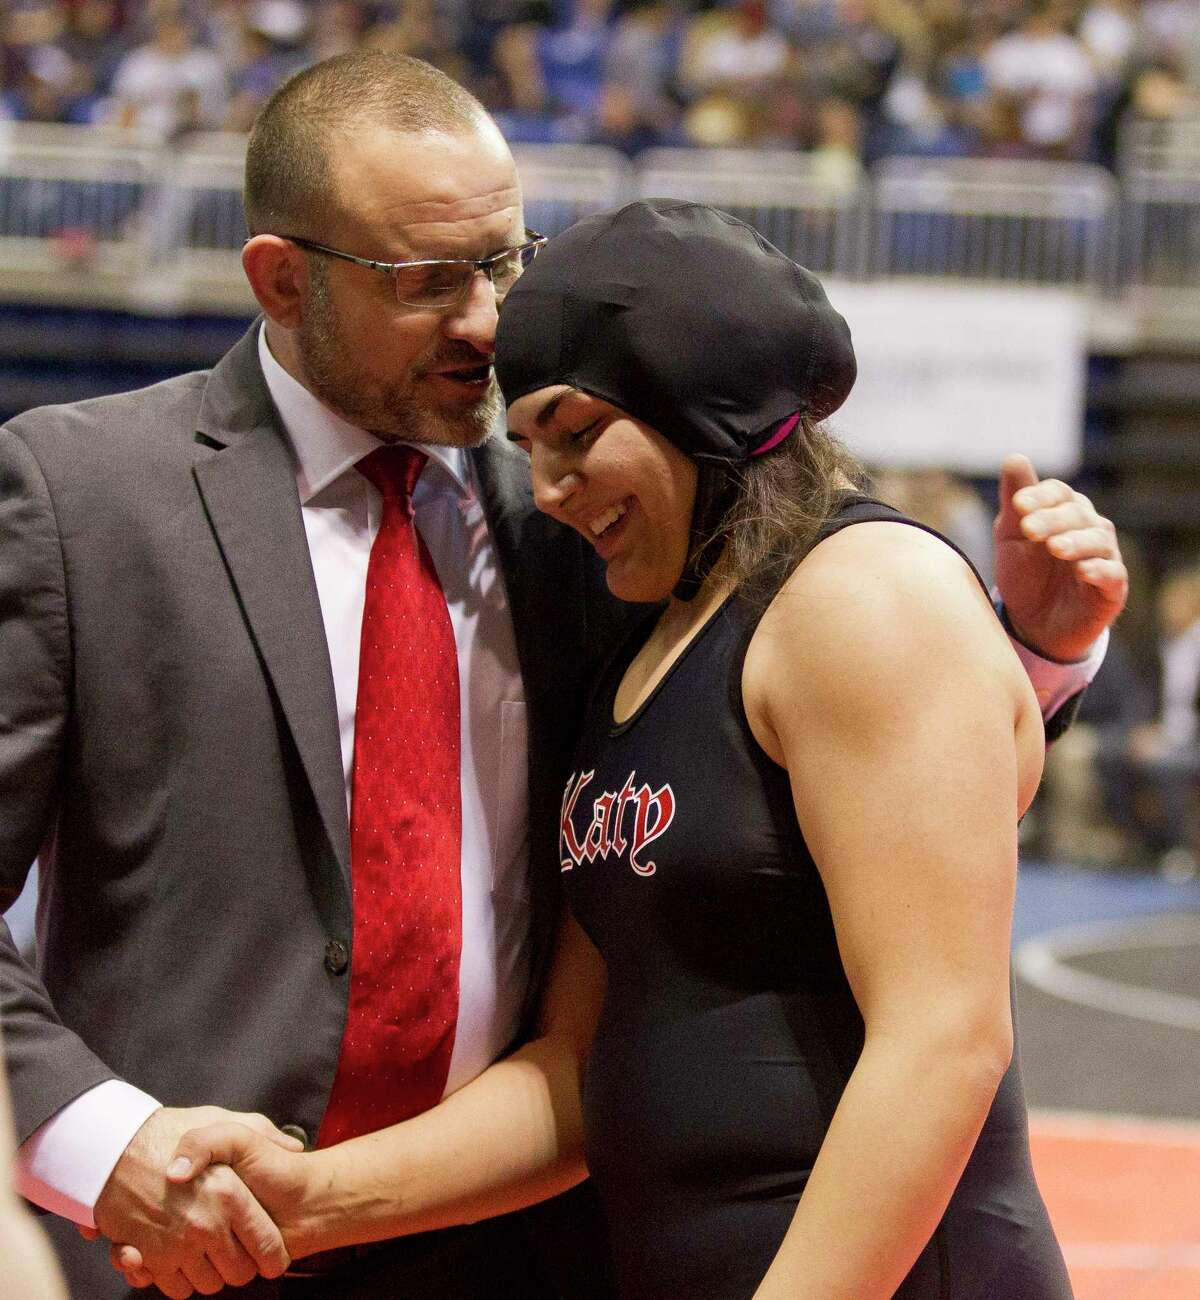 Courtney Garza of Katy smiles after defeating Ariana Mendoza of Comal Smithson Valley to win third place in the Class 6A girls 185-pound consolation final at the UIL Wrestling State Championships Saturday, Feb. 25, 2017, in Cypress.